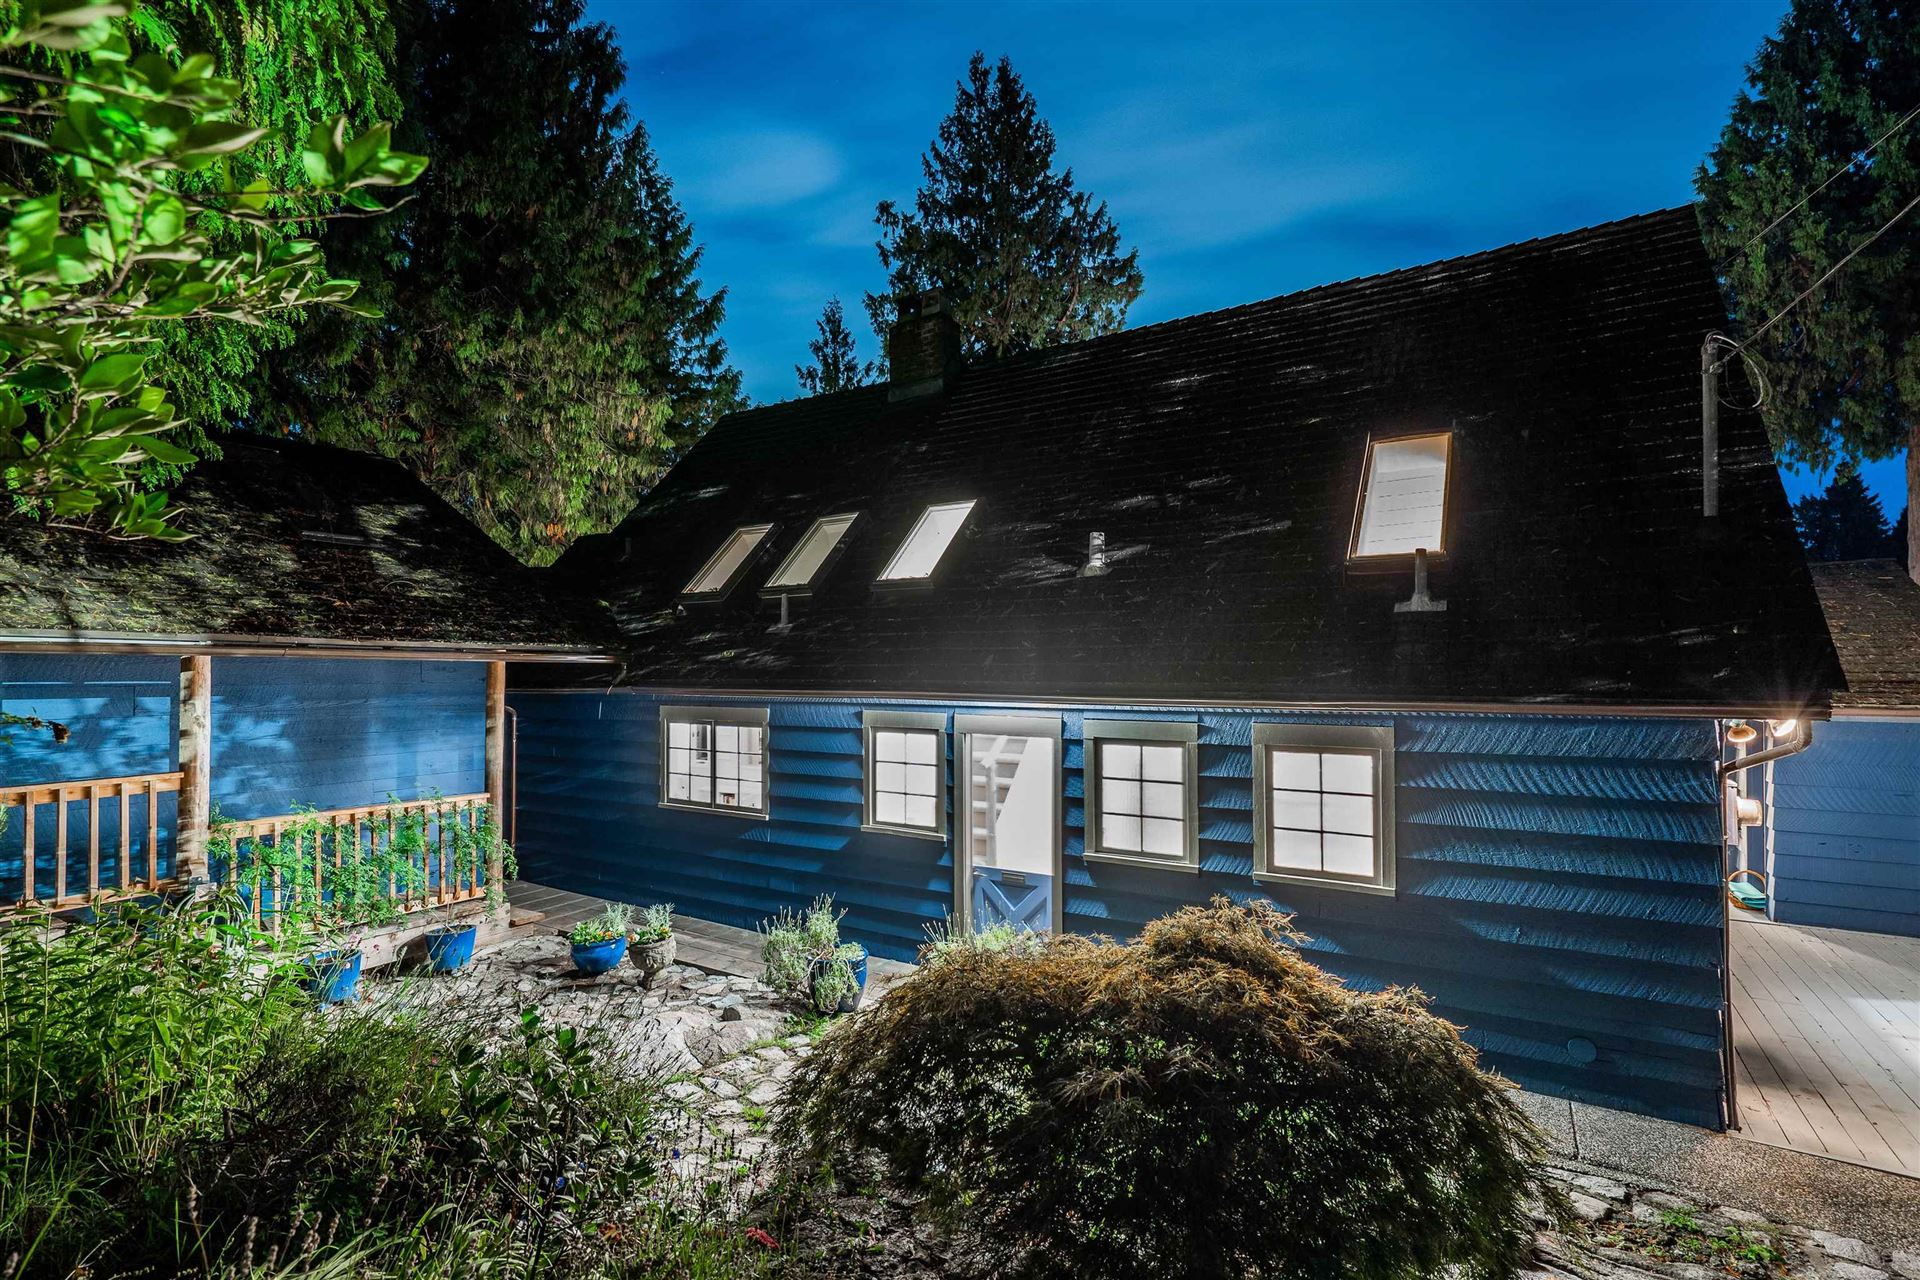 Photo of 4726 MARINE DRIVE, West Vancouver, BC V7W 2P2 (MLS # R2619759)